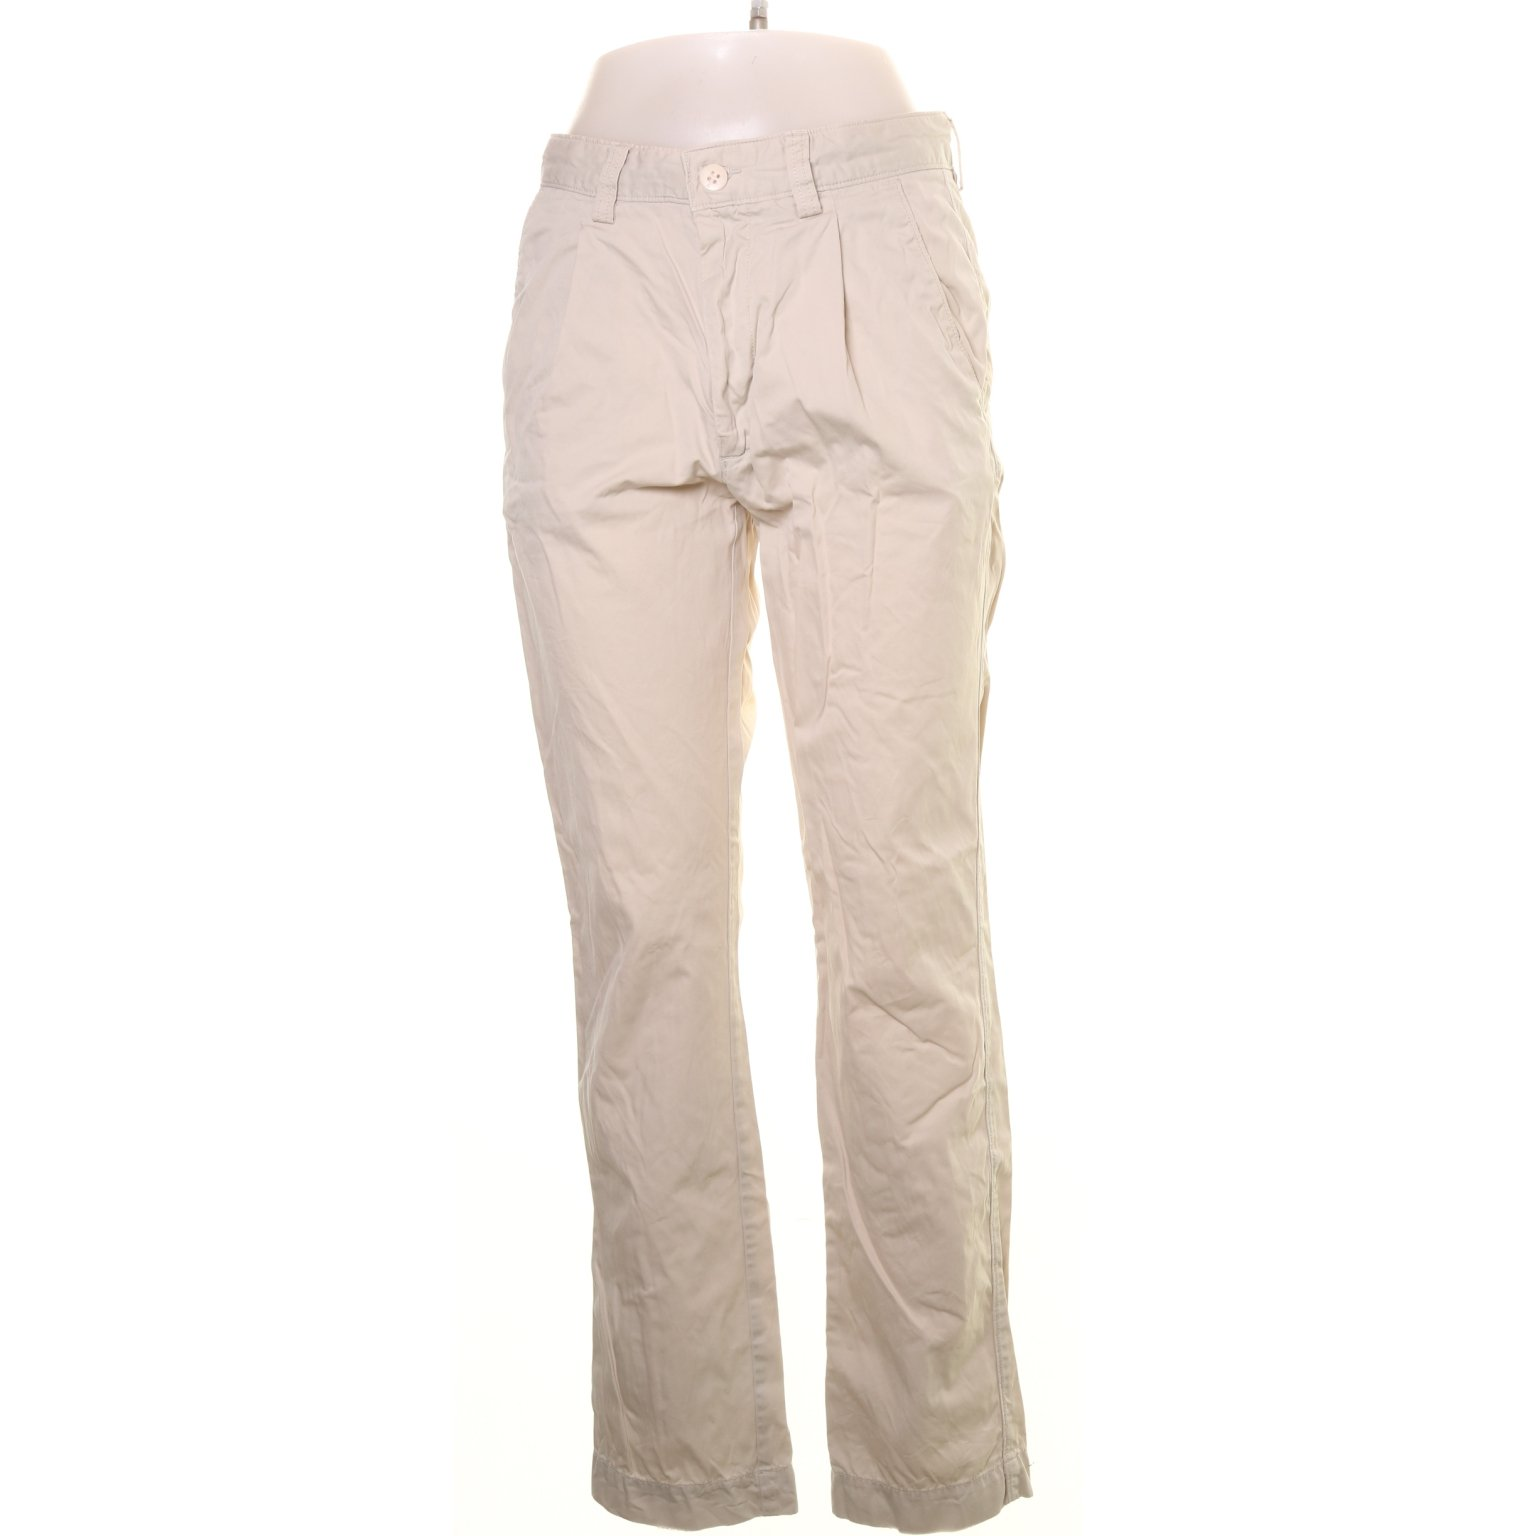 Dockers, Chinos, Strl: W:29 L:32, Beige, Bomull